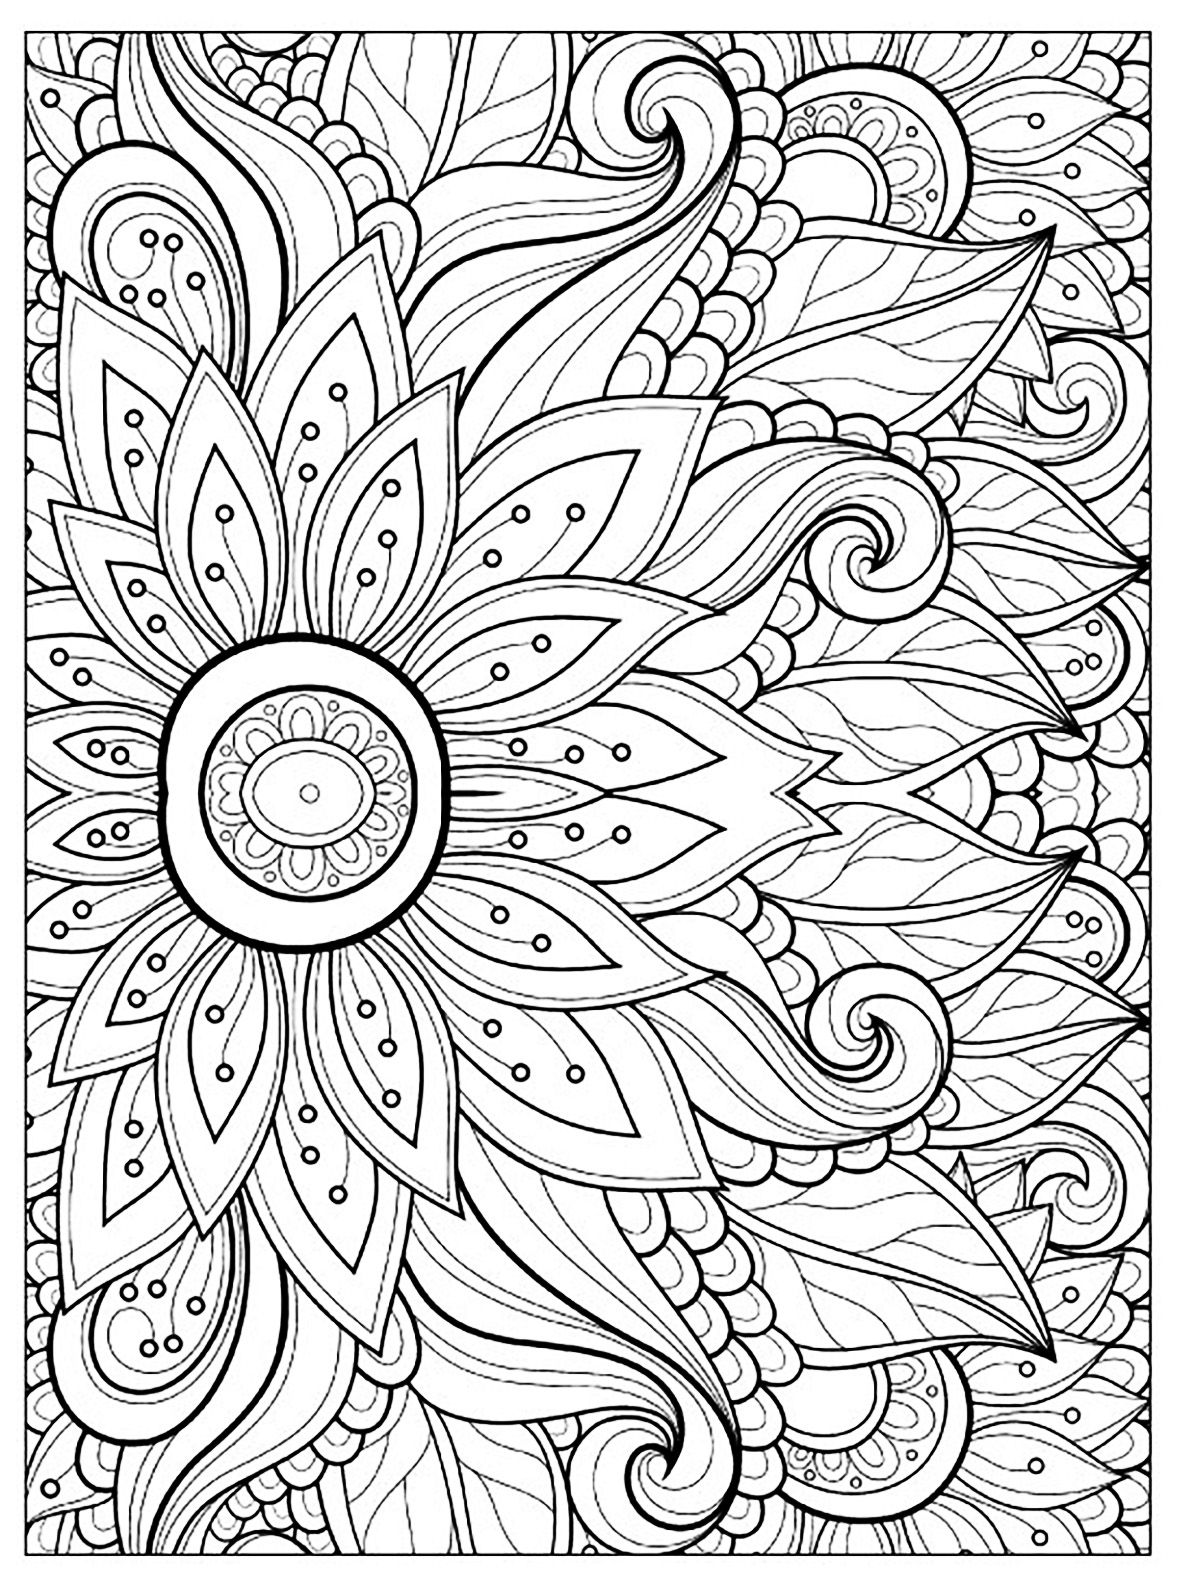 colouring flowers flowers coloring pages coloringpages1001com flowers colouring